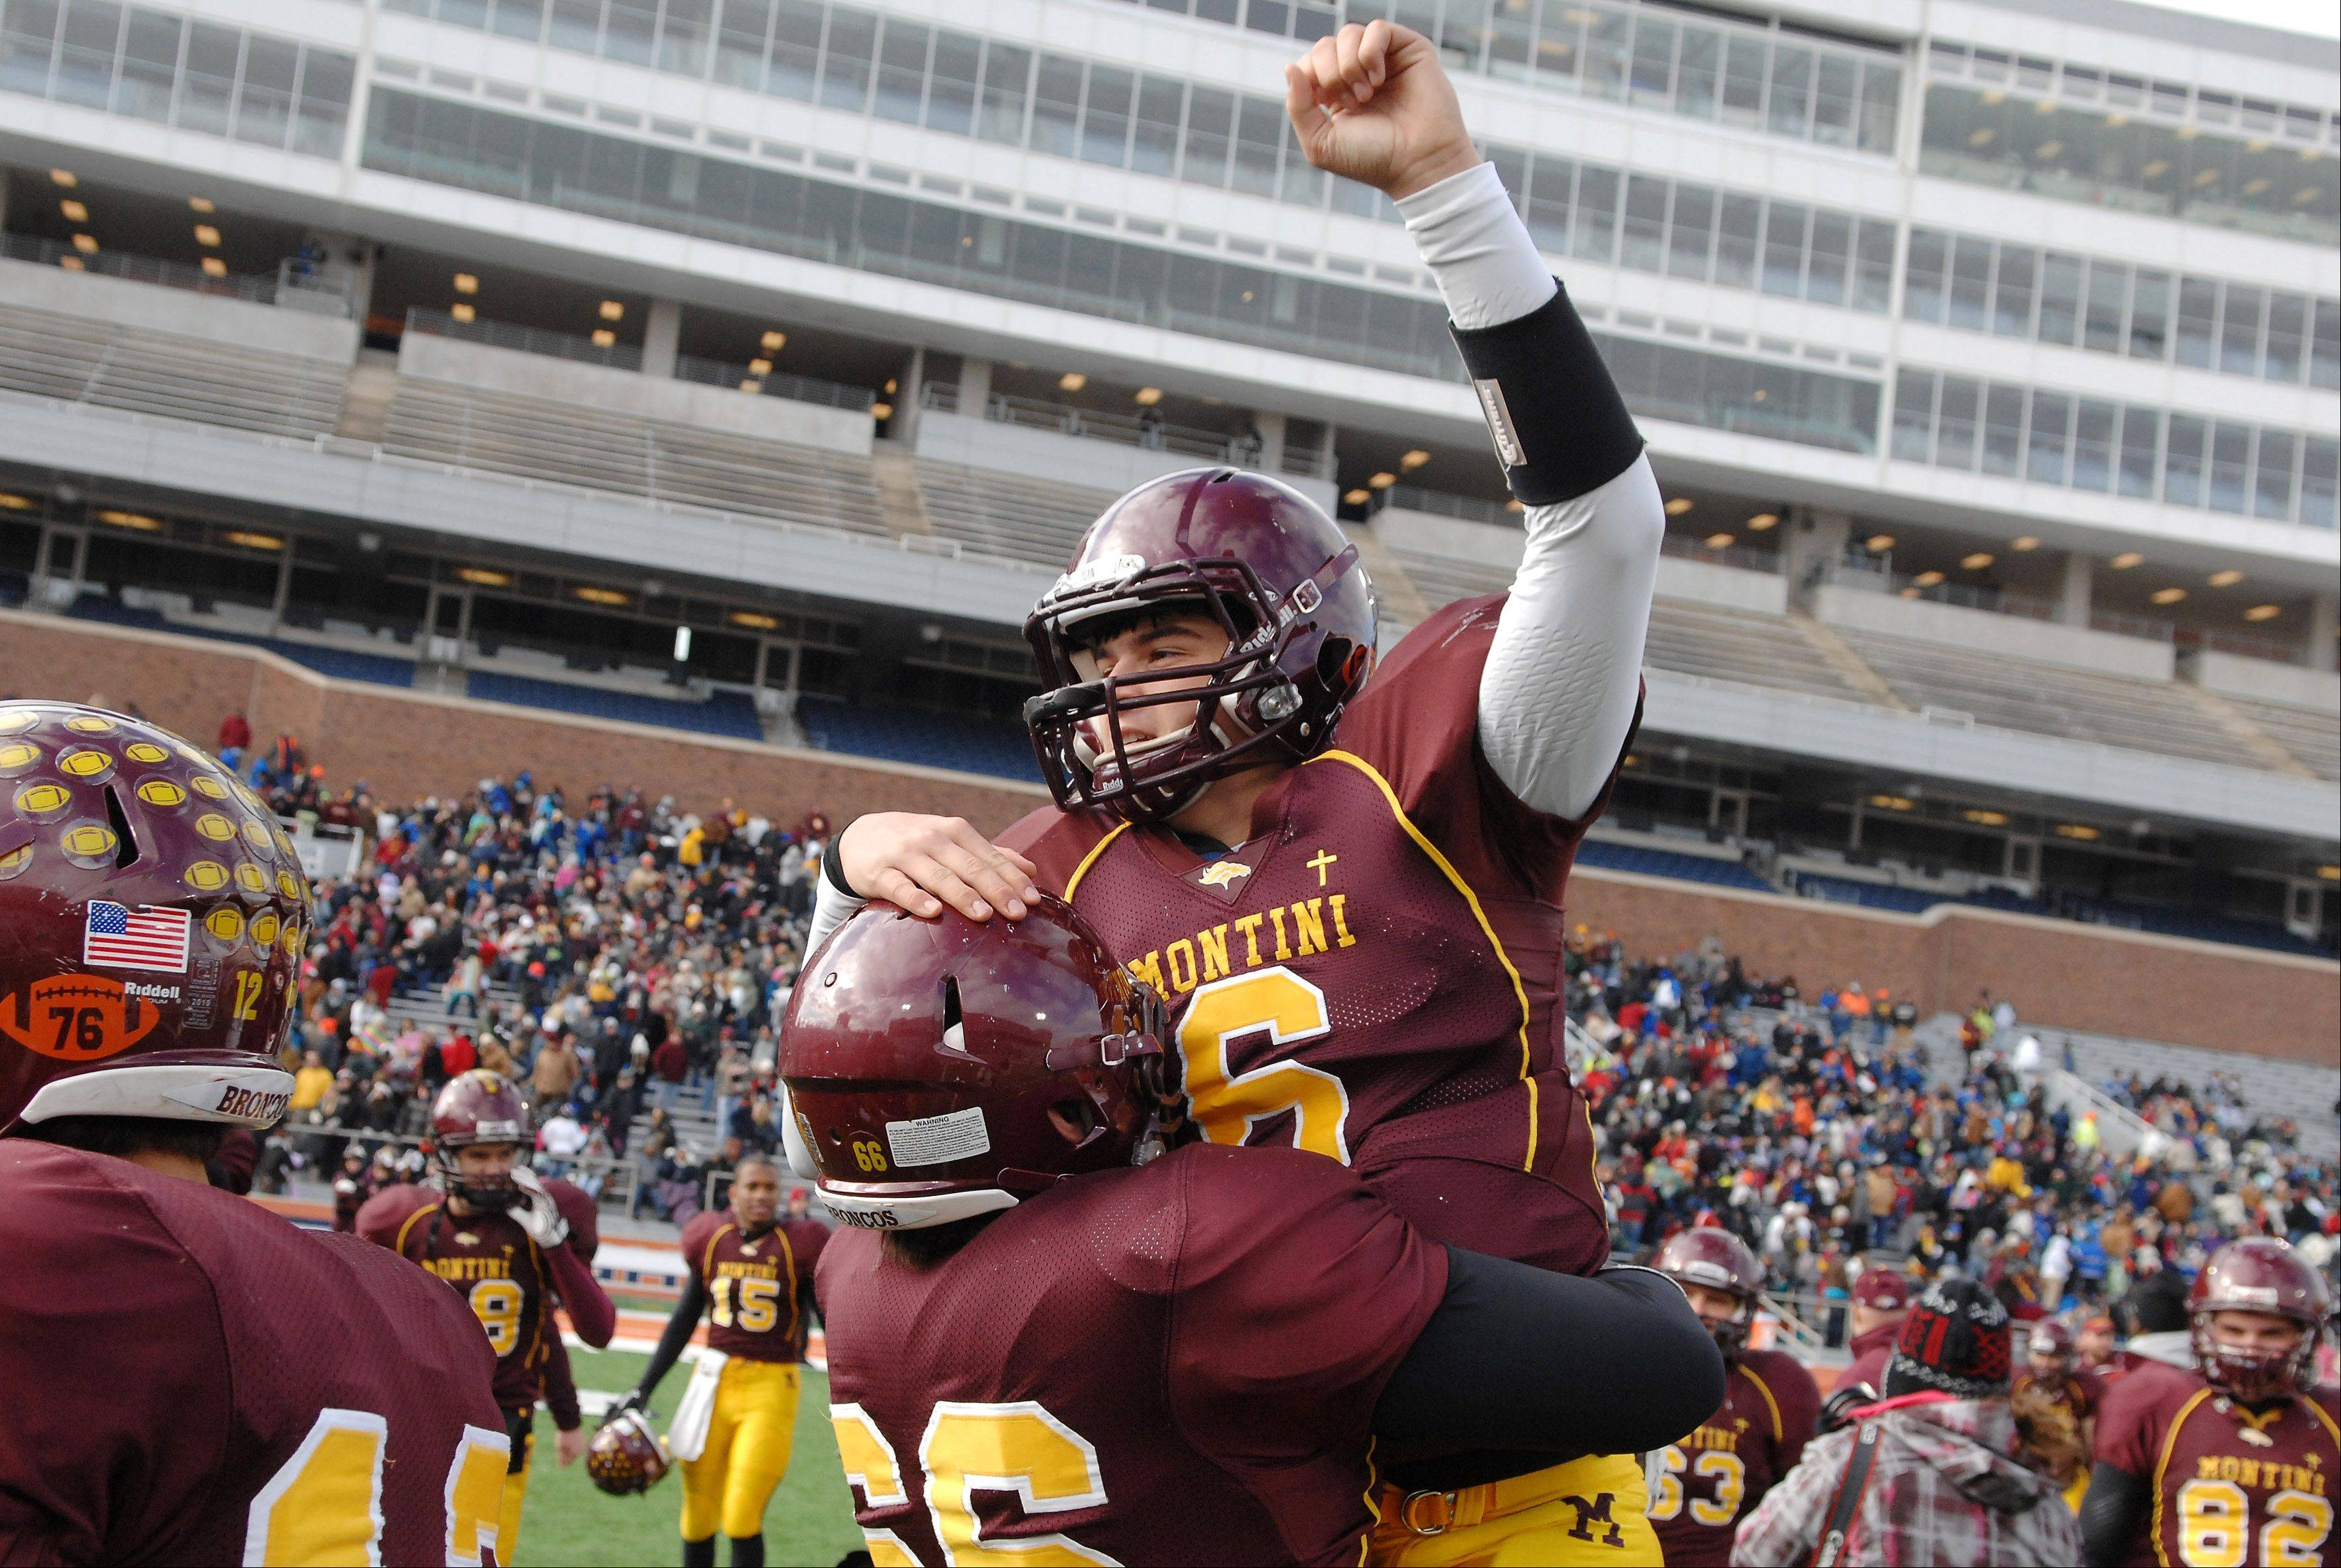 Montini quarterback Alexander Wills, 6, is hoisted in the air by teammate David Sarkan, 66, after their win over Morris in Saturday's Class 5A state title game at Memorial Stadium in Champaign.